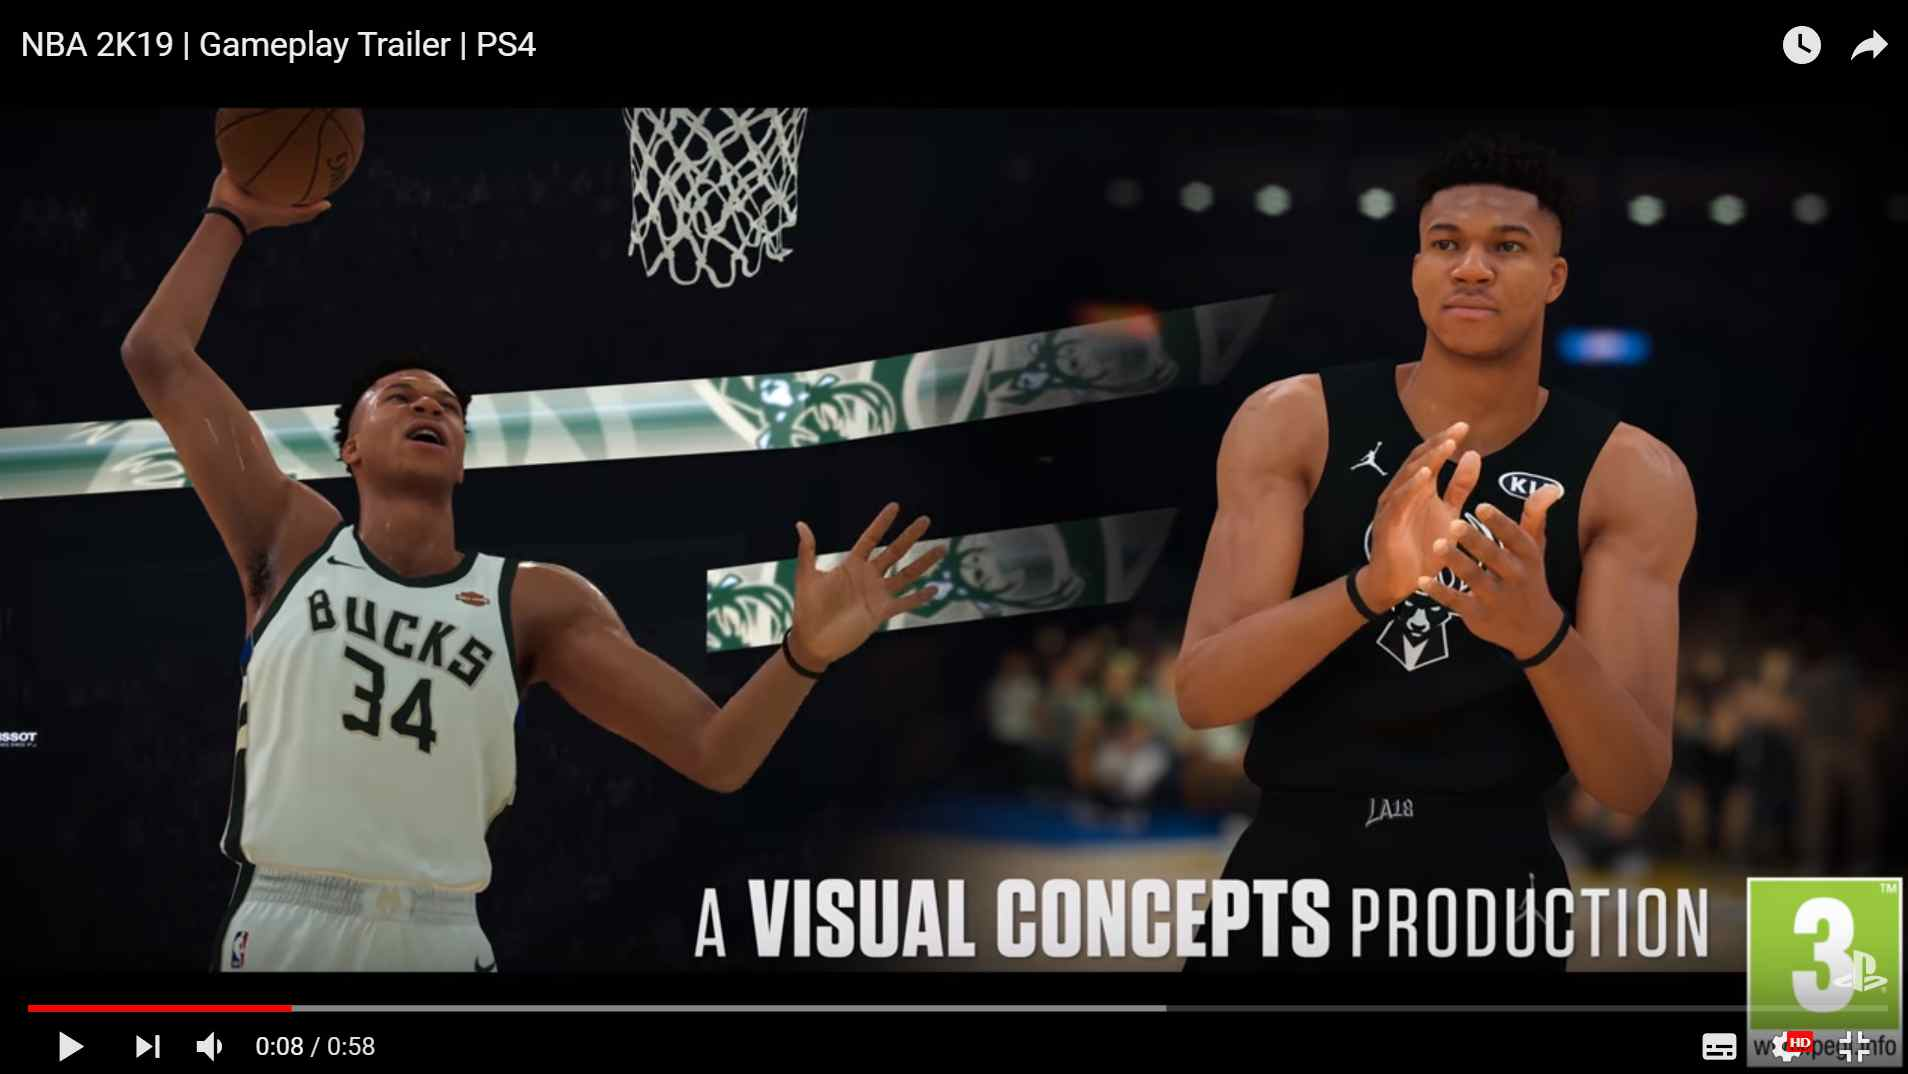 b54a976ce5d Giannis Antetokounmpo from the Milwaukee Bucks will be the cover player of  the standard edition of NBA 2K19.  Screenshot of YouTube video